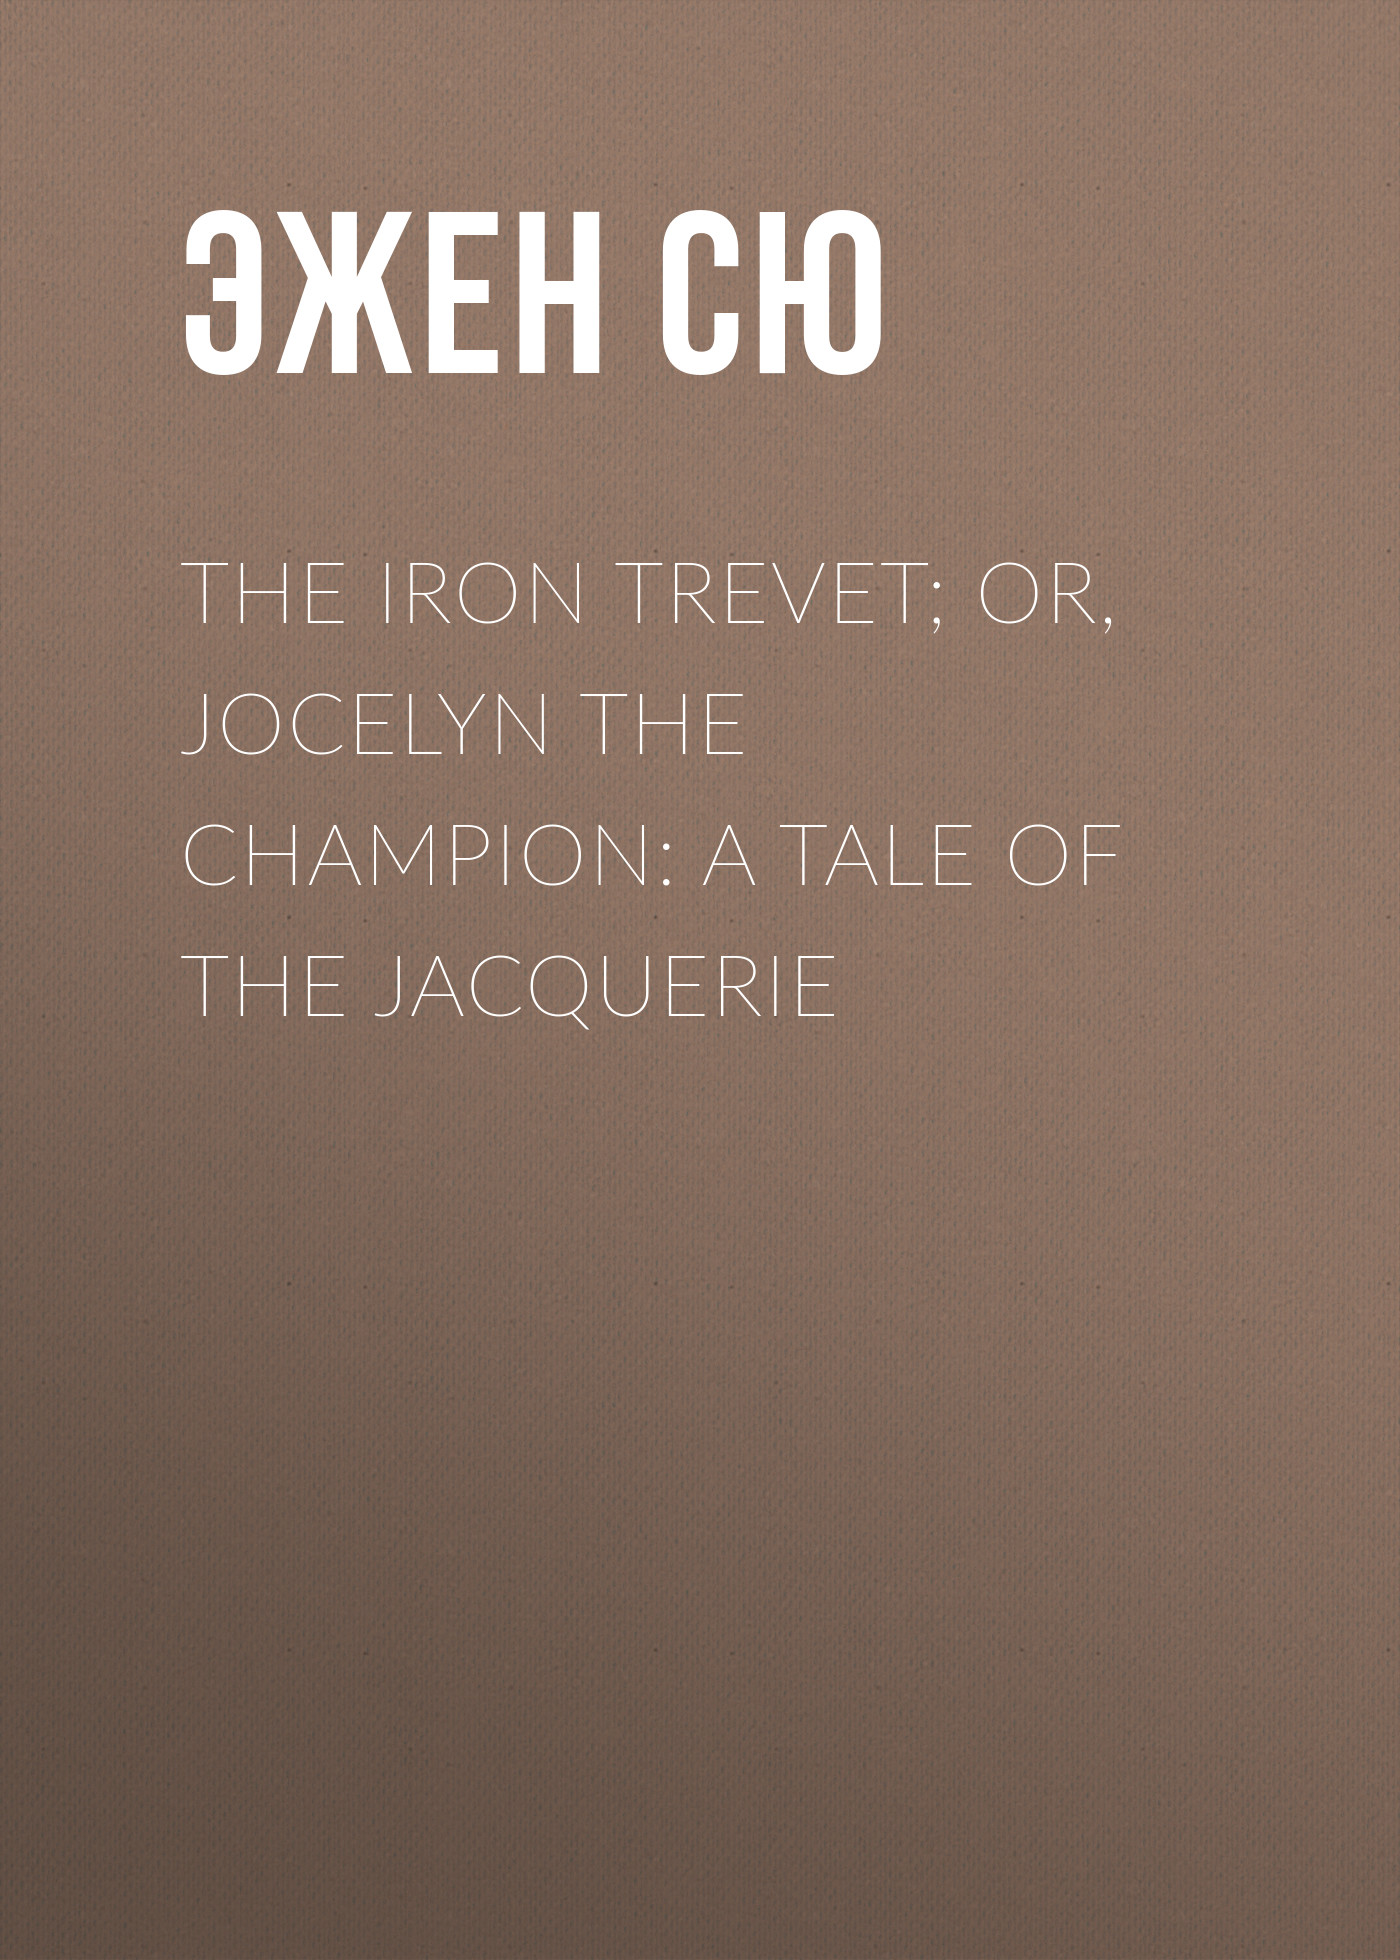 Эжен Сю The Iron Trevet; or, Jocelyn the Champion: A Tale of the Jacquerie jocelyn parks unistuste purje all